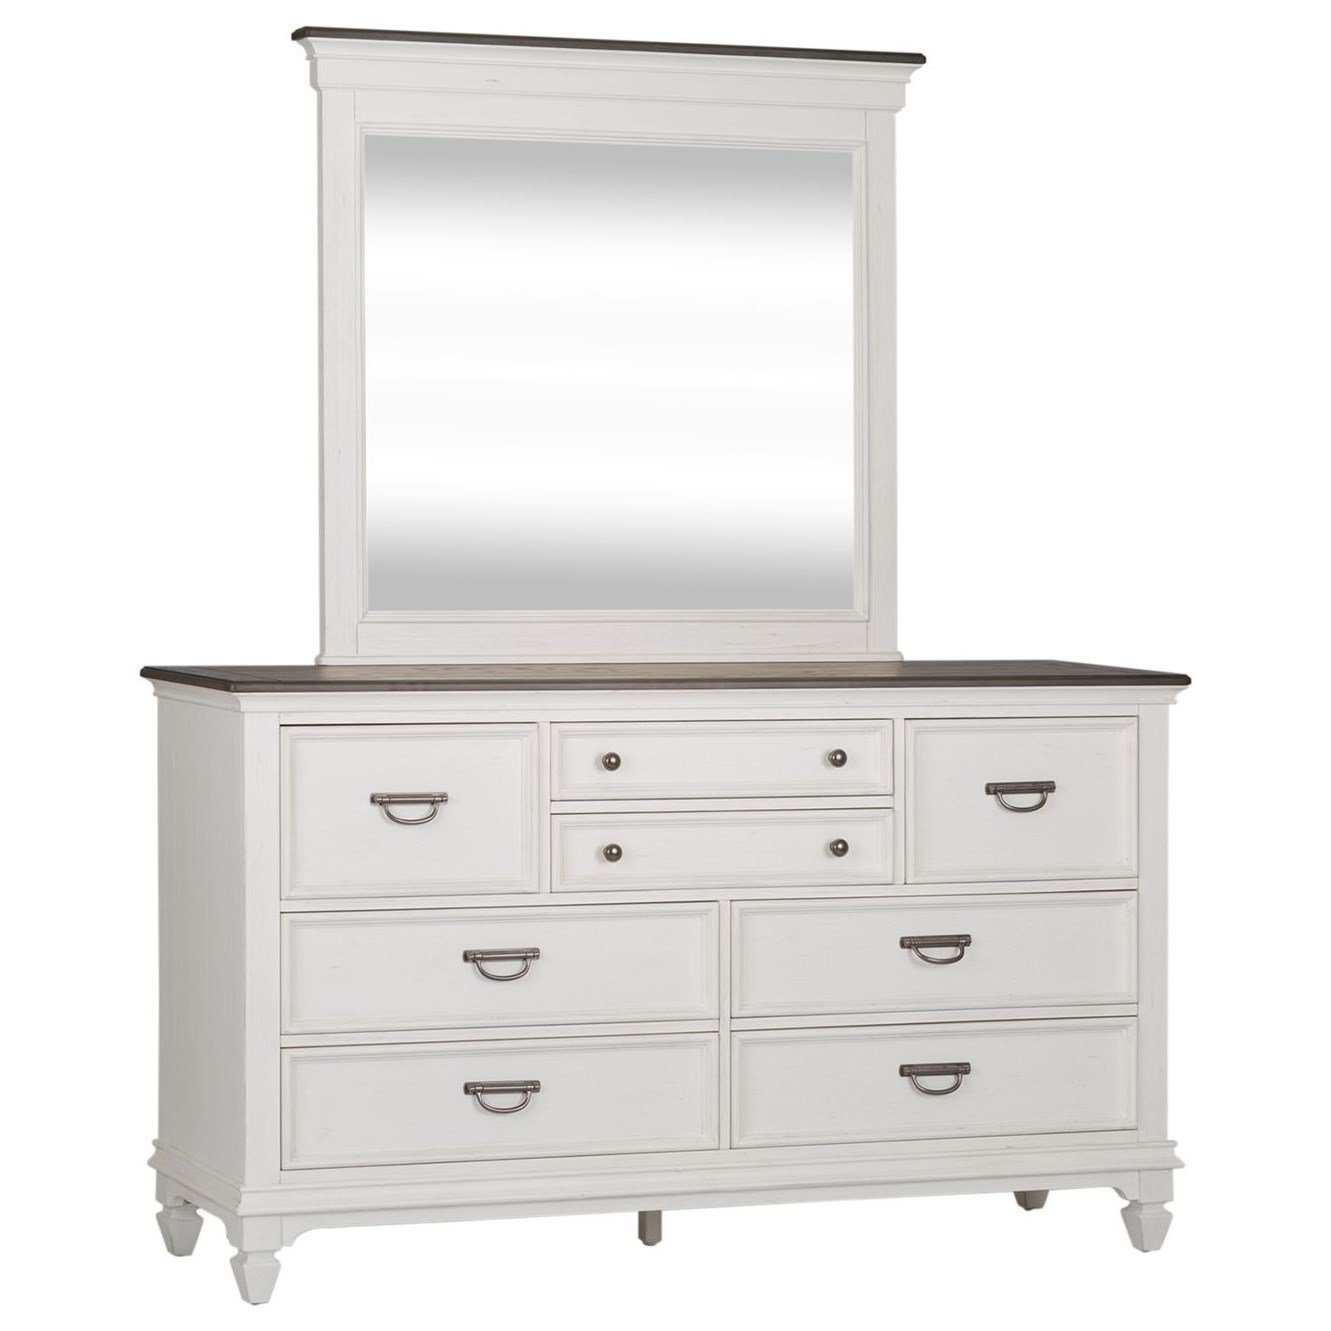 Allyson Park Dresser & Mirror  by Liberty Furniture at Van Hill Furniture